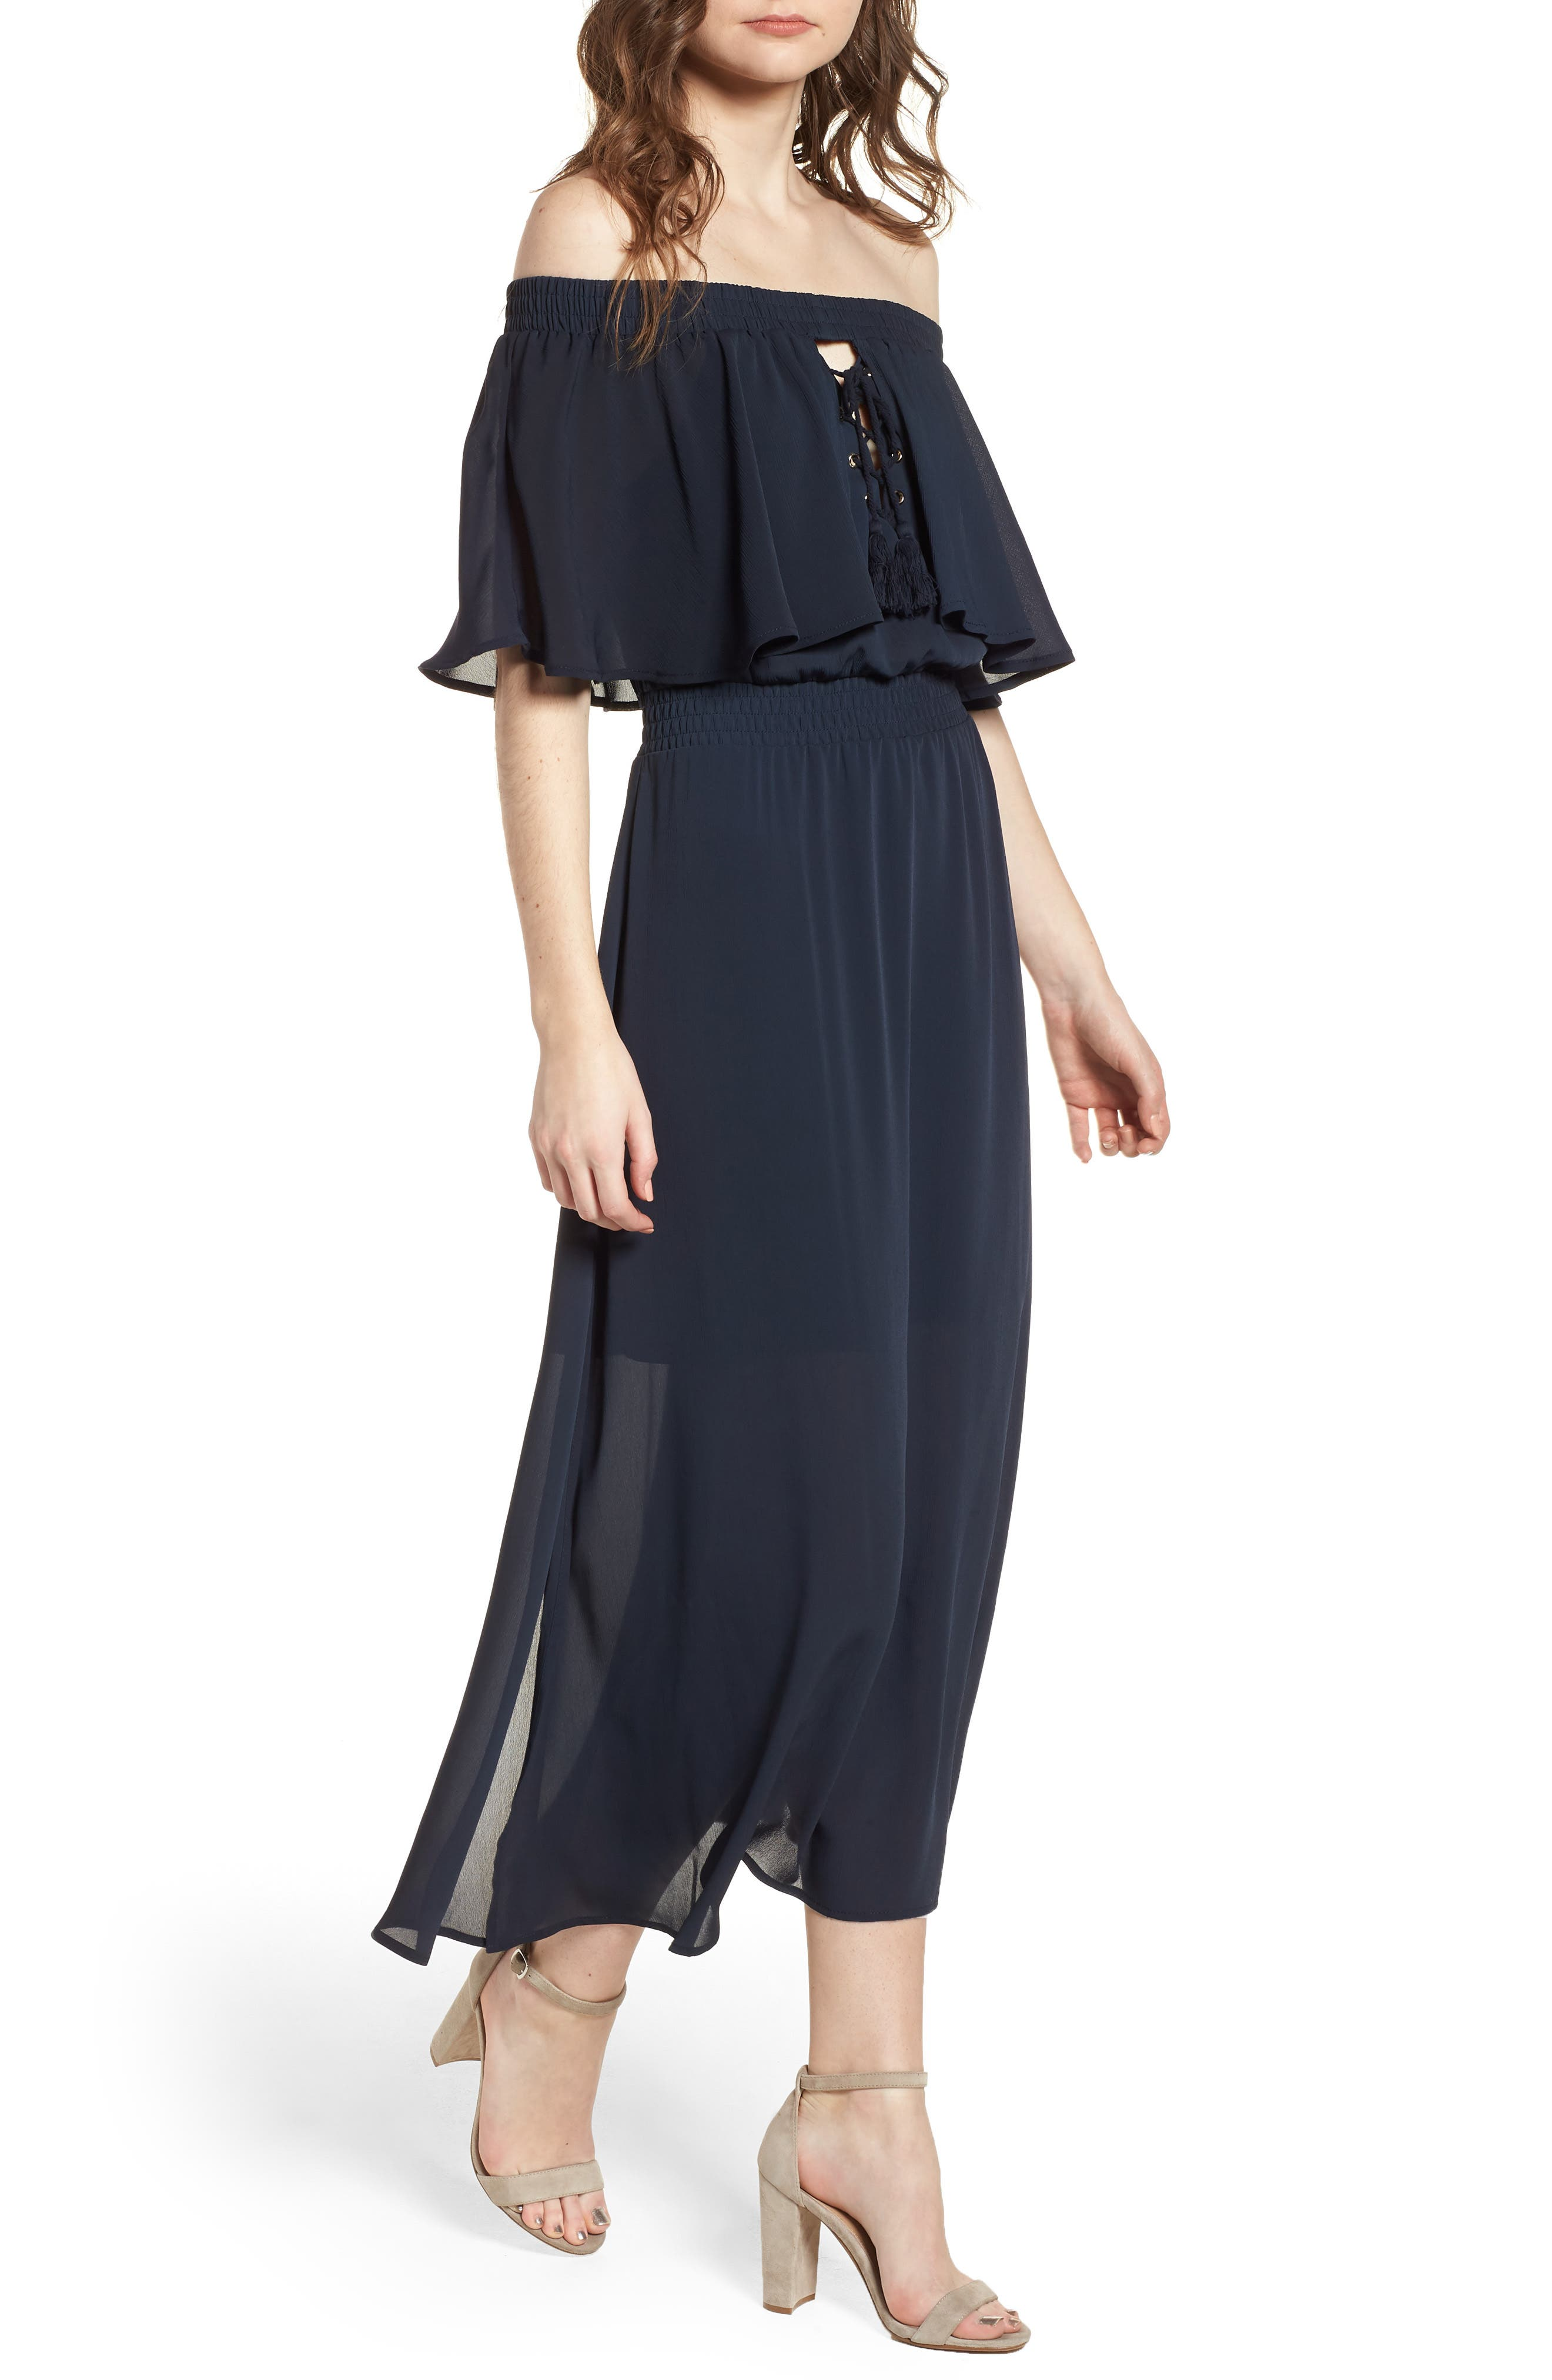 Touch the Sun Off the Shoulder Dress,                         Main,                         color,